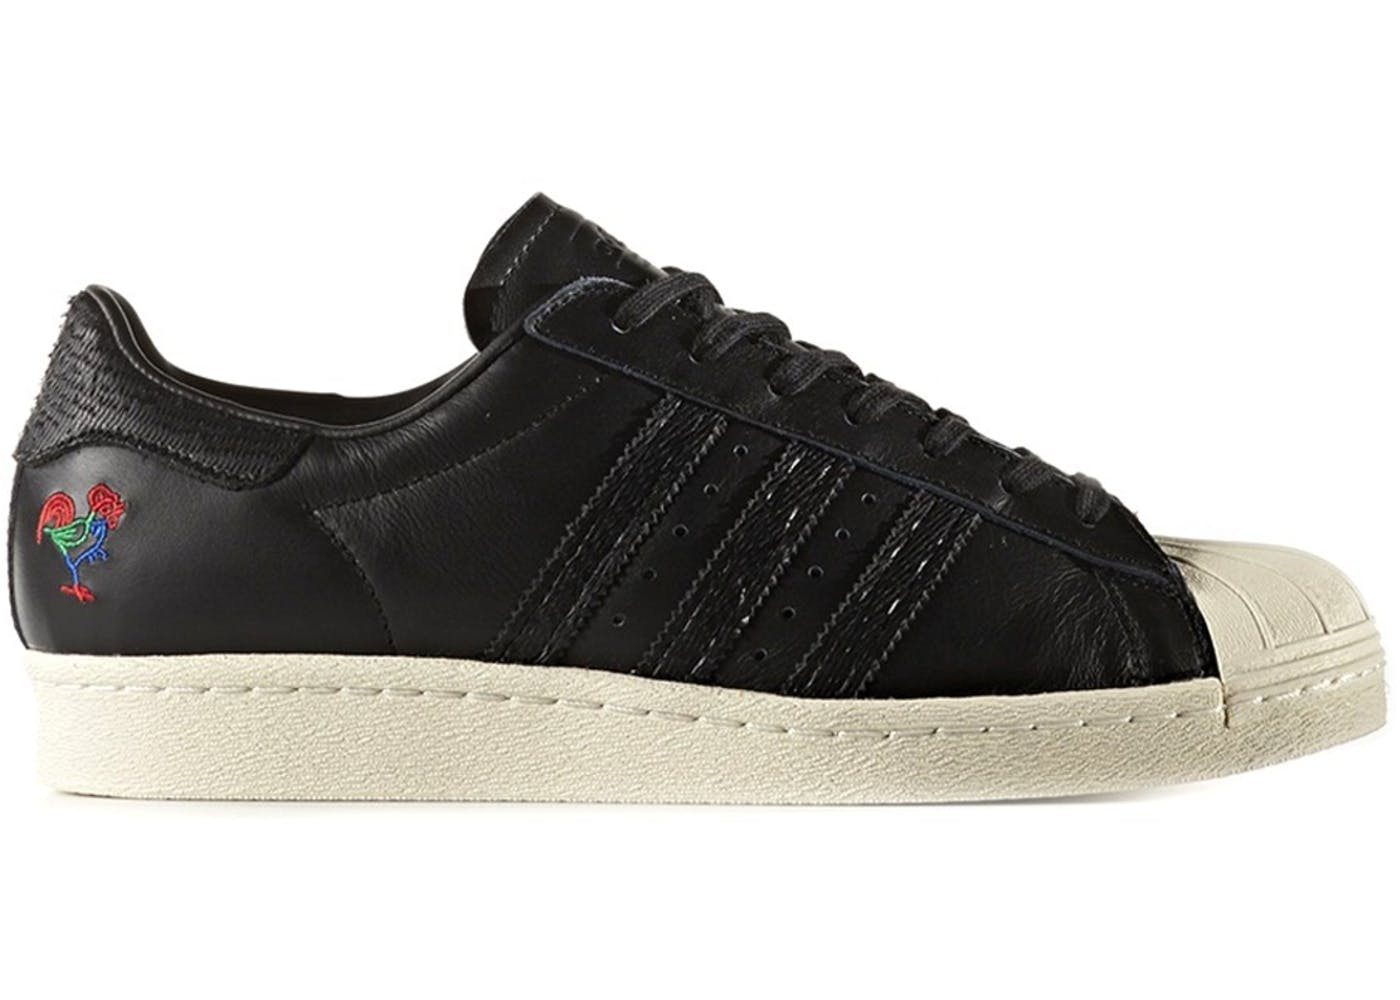 Adidas Superstar II ''Shell Toe's'' On Feet